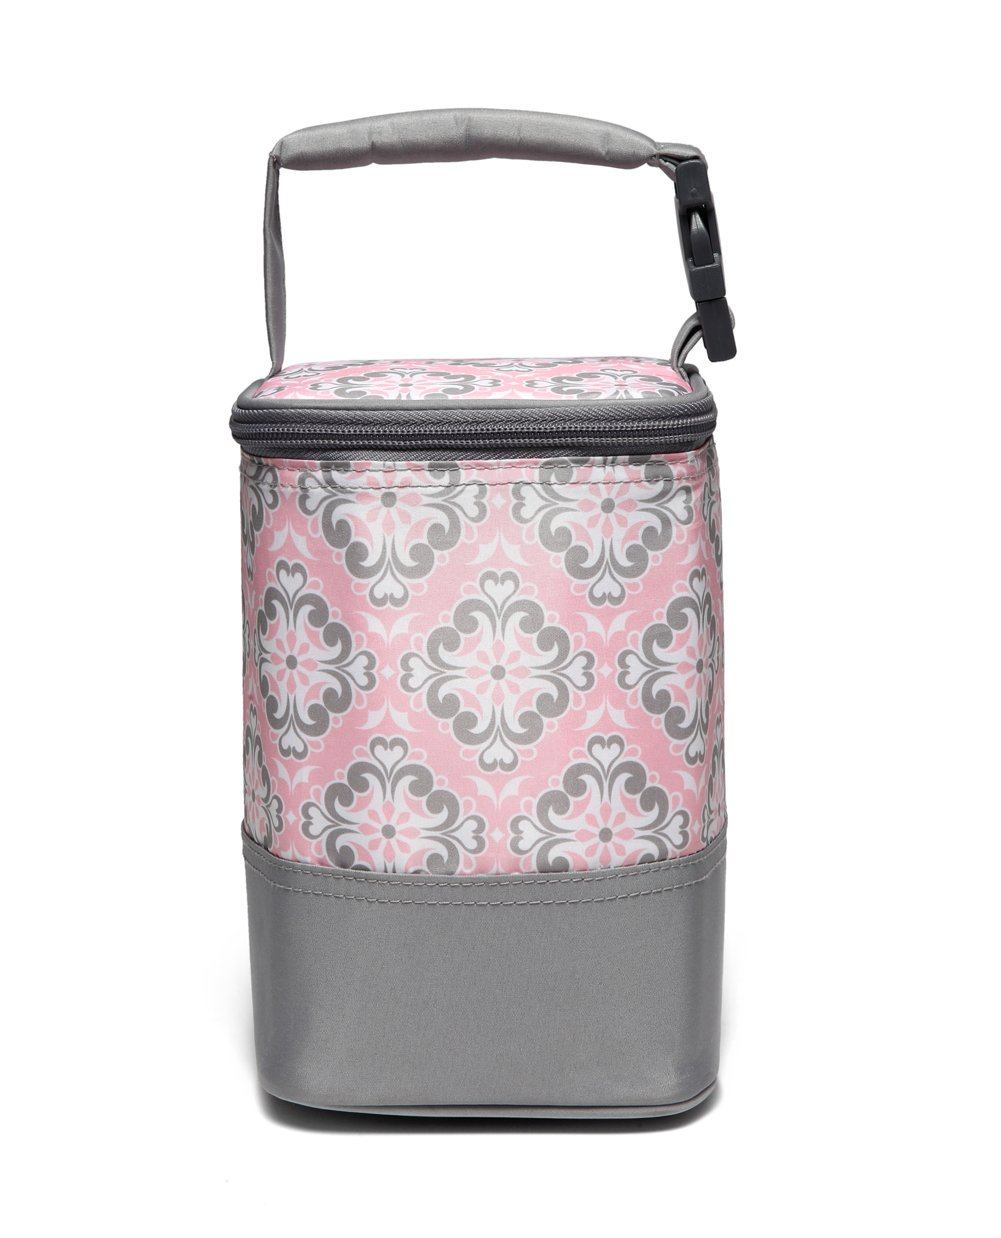 LCY Baby Feeding Insulated Bottle Bag Cooler Bag Keep Warm or Cool with Hanging Strap Fit Up 4 Bottles-Flowers Pink by LCY